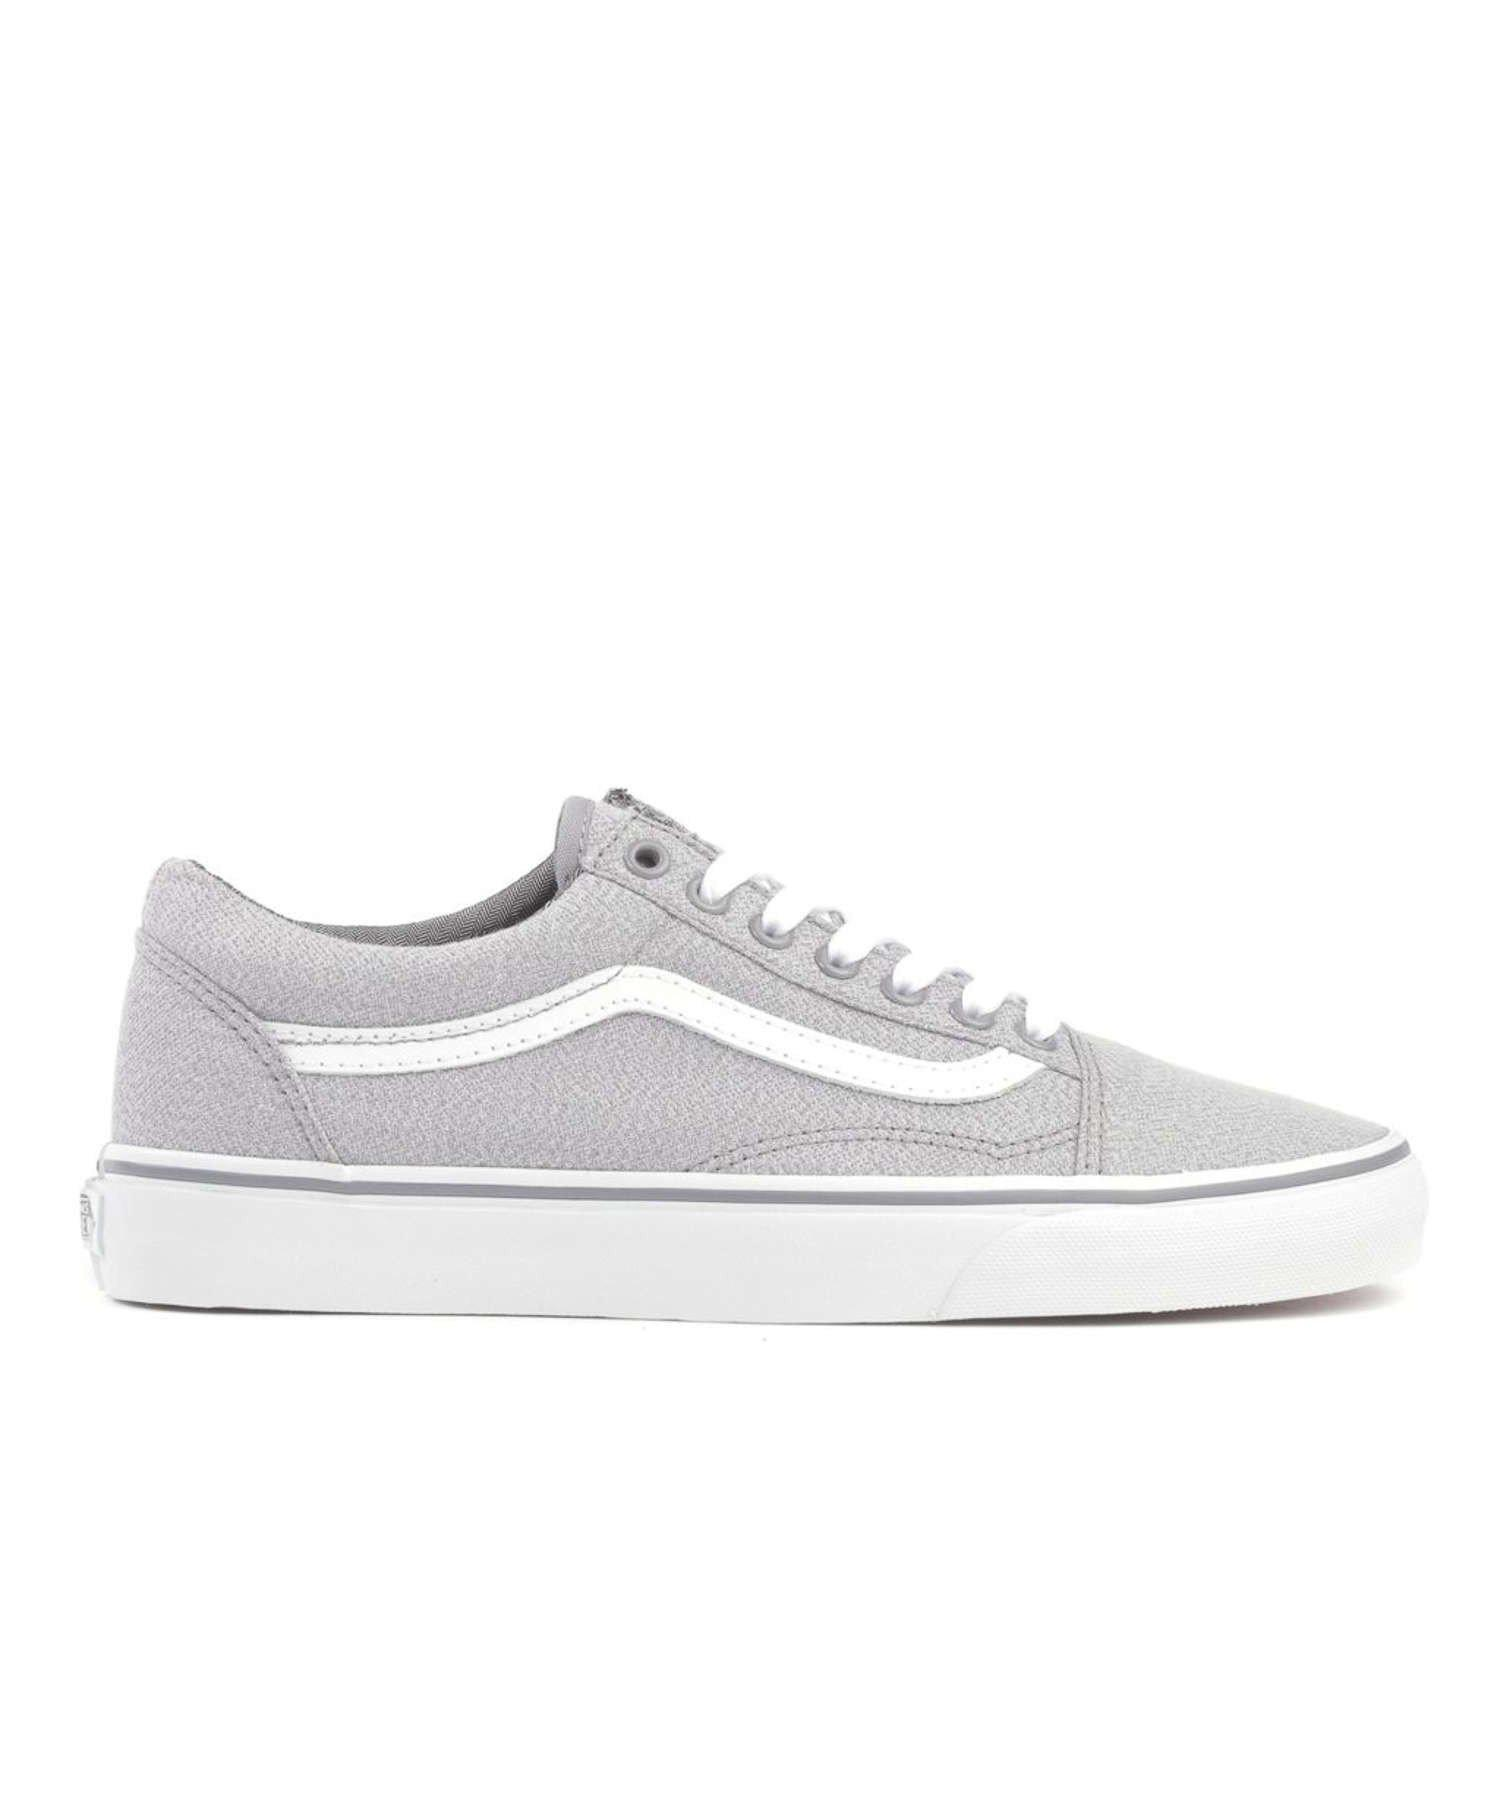 4c3e0f5a0a3 Lyst - Vans Old Skool Suiting Fabric In Frost Grey in Gray for Men